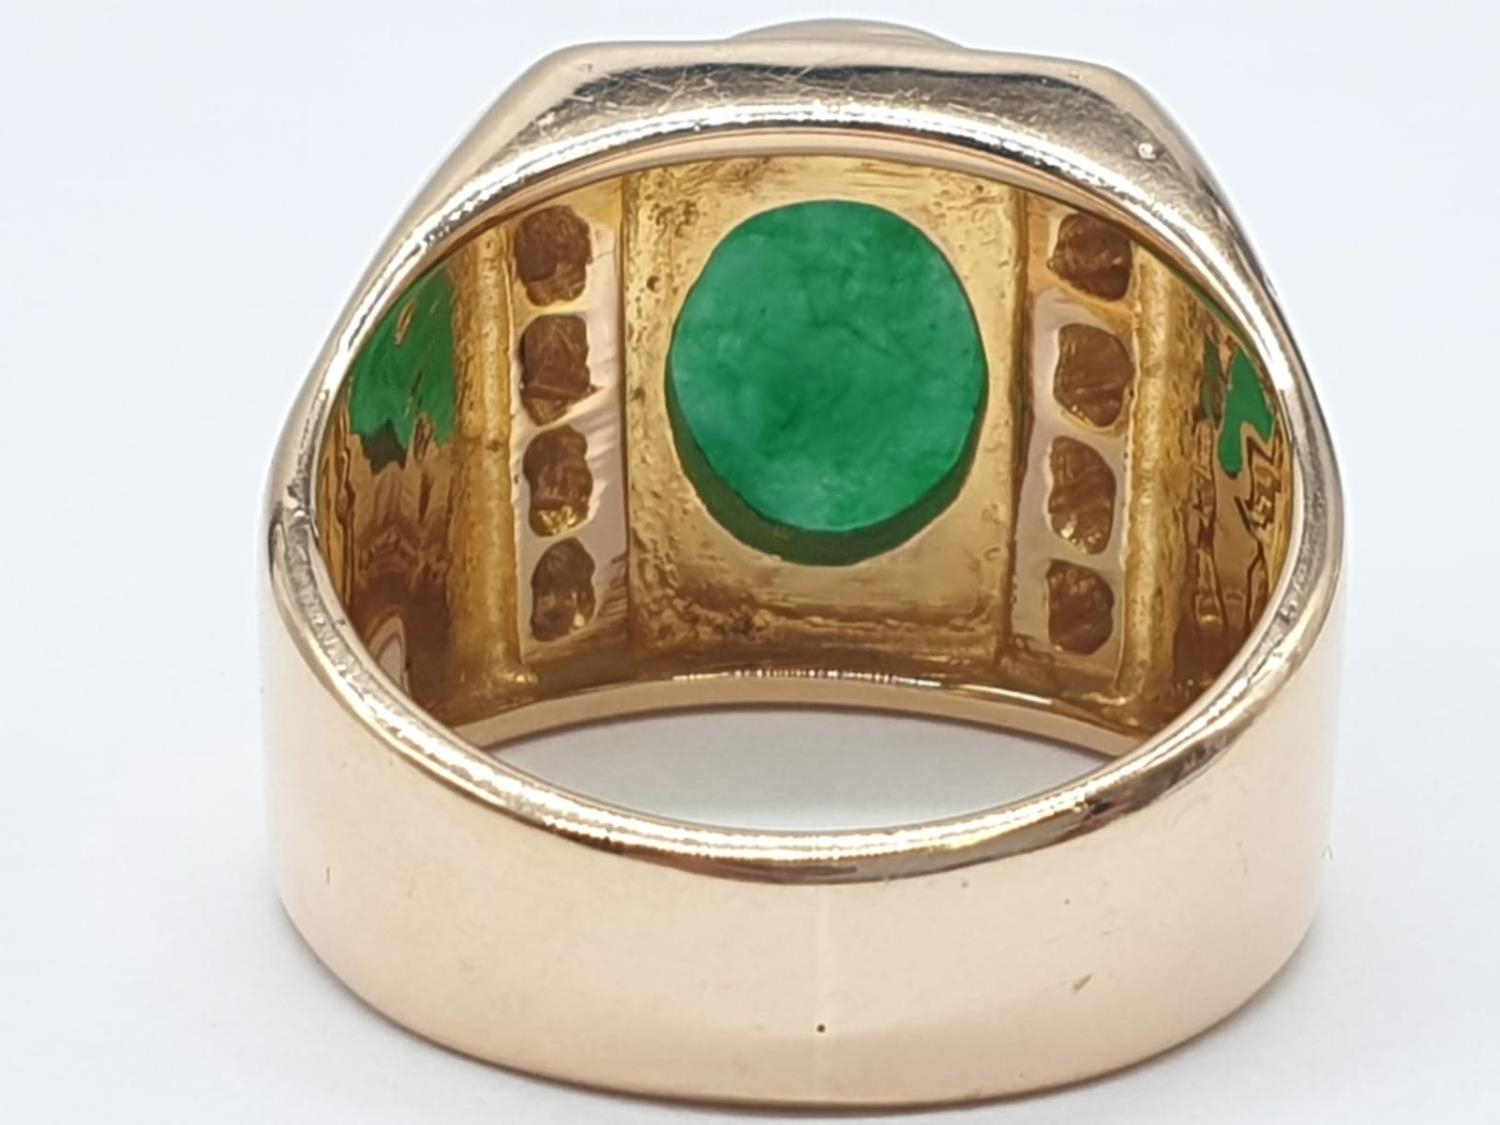 18ct Gold ring with natural jade stone and diamond shoulders. 16.2g total weight and size R. - Image 6 of 8